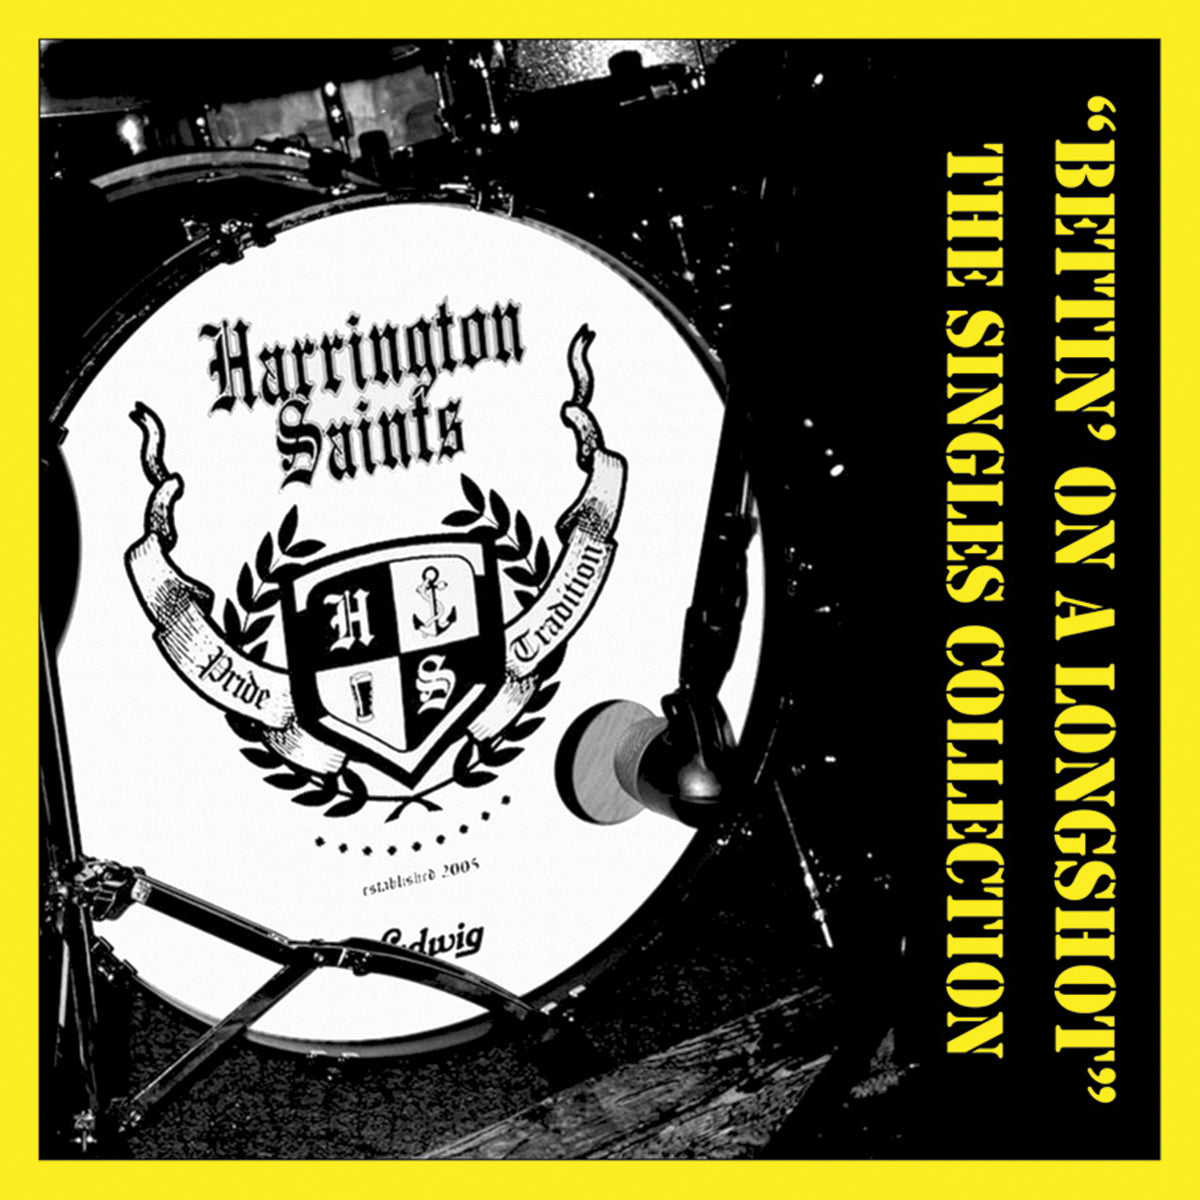 Harrington Saints - Bettin' On A Longshot LP / CD